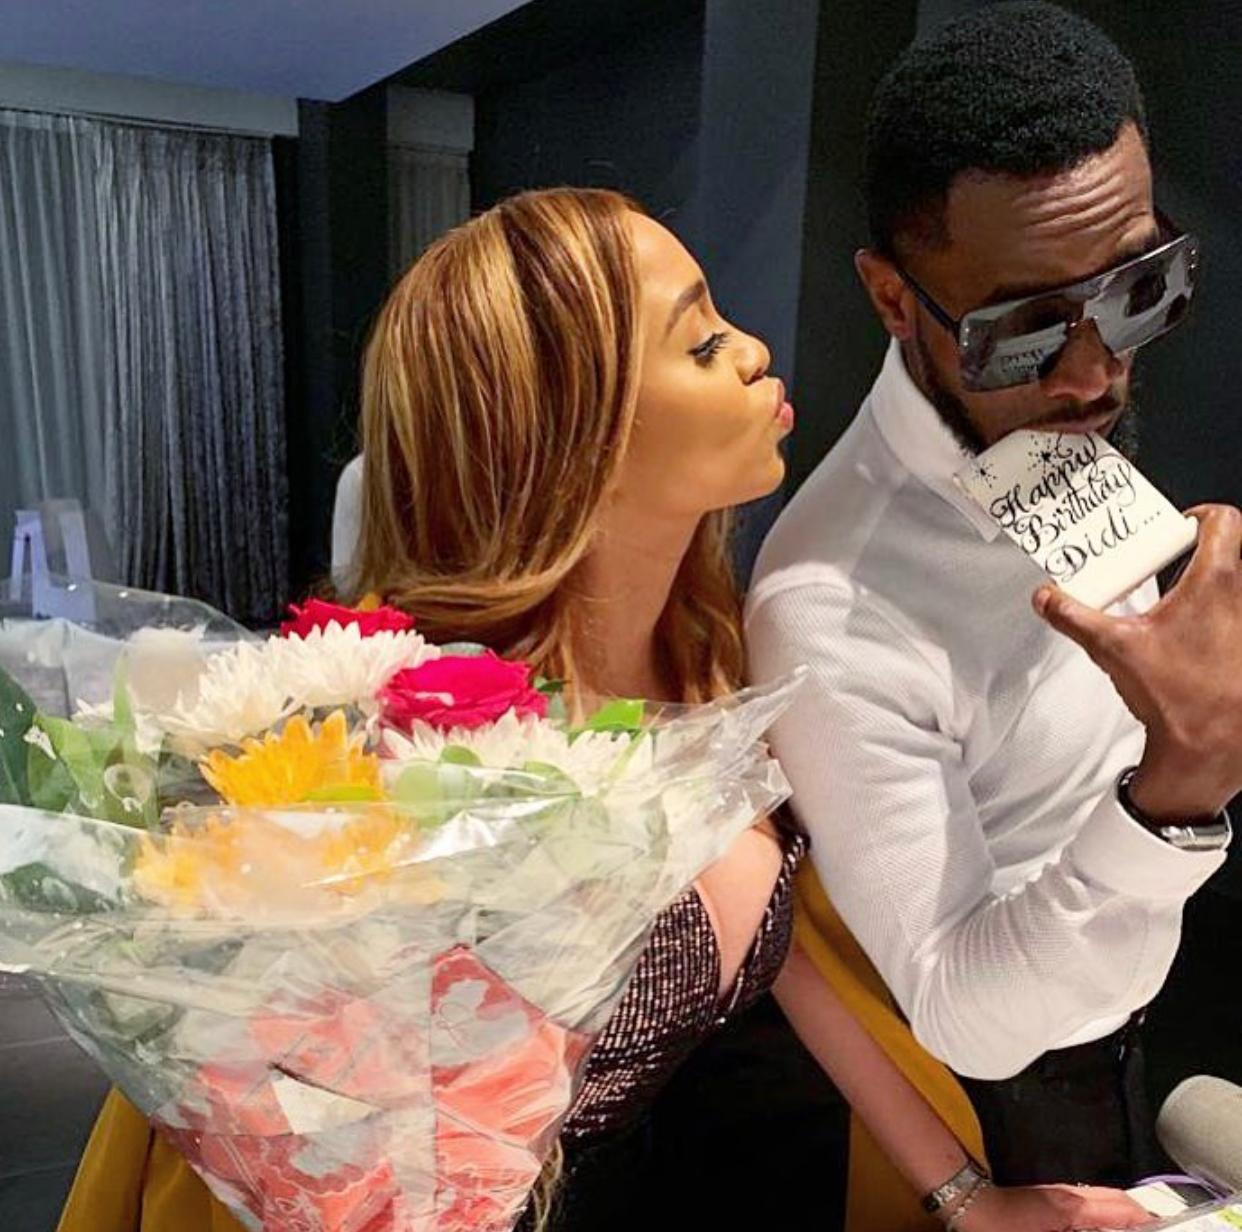 D'banj declares commitment to celebrating life in everything he does